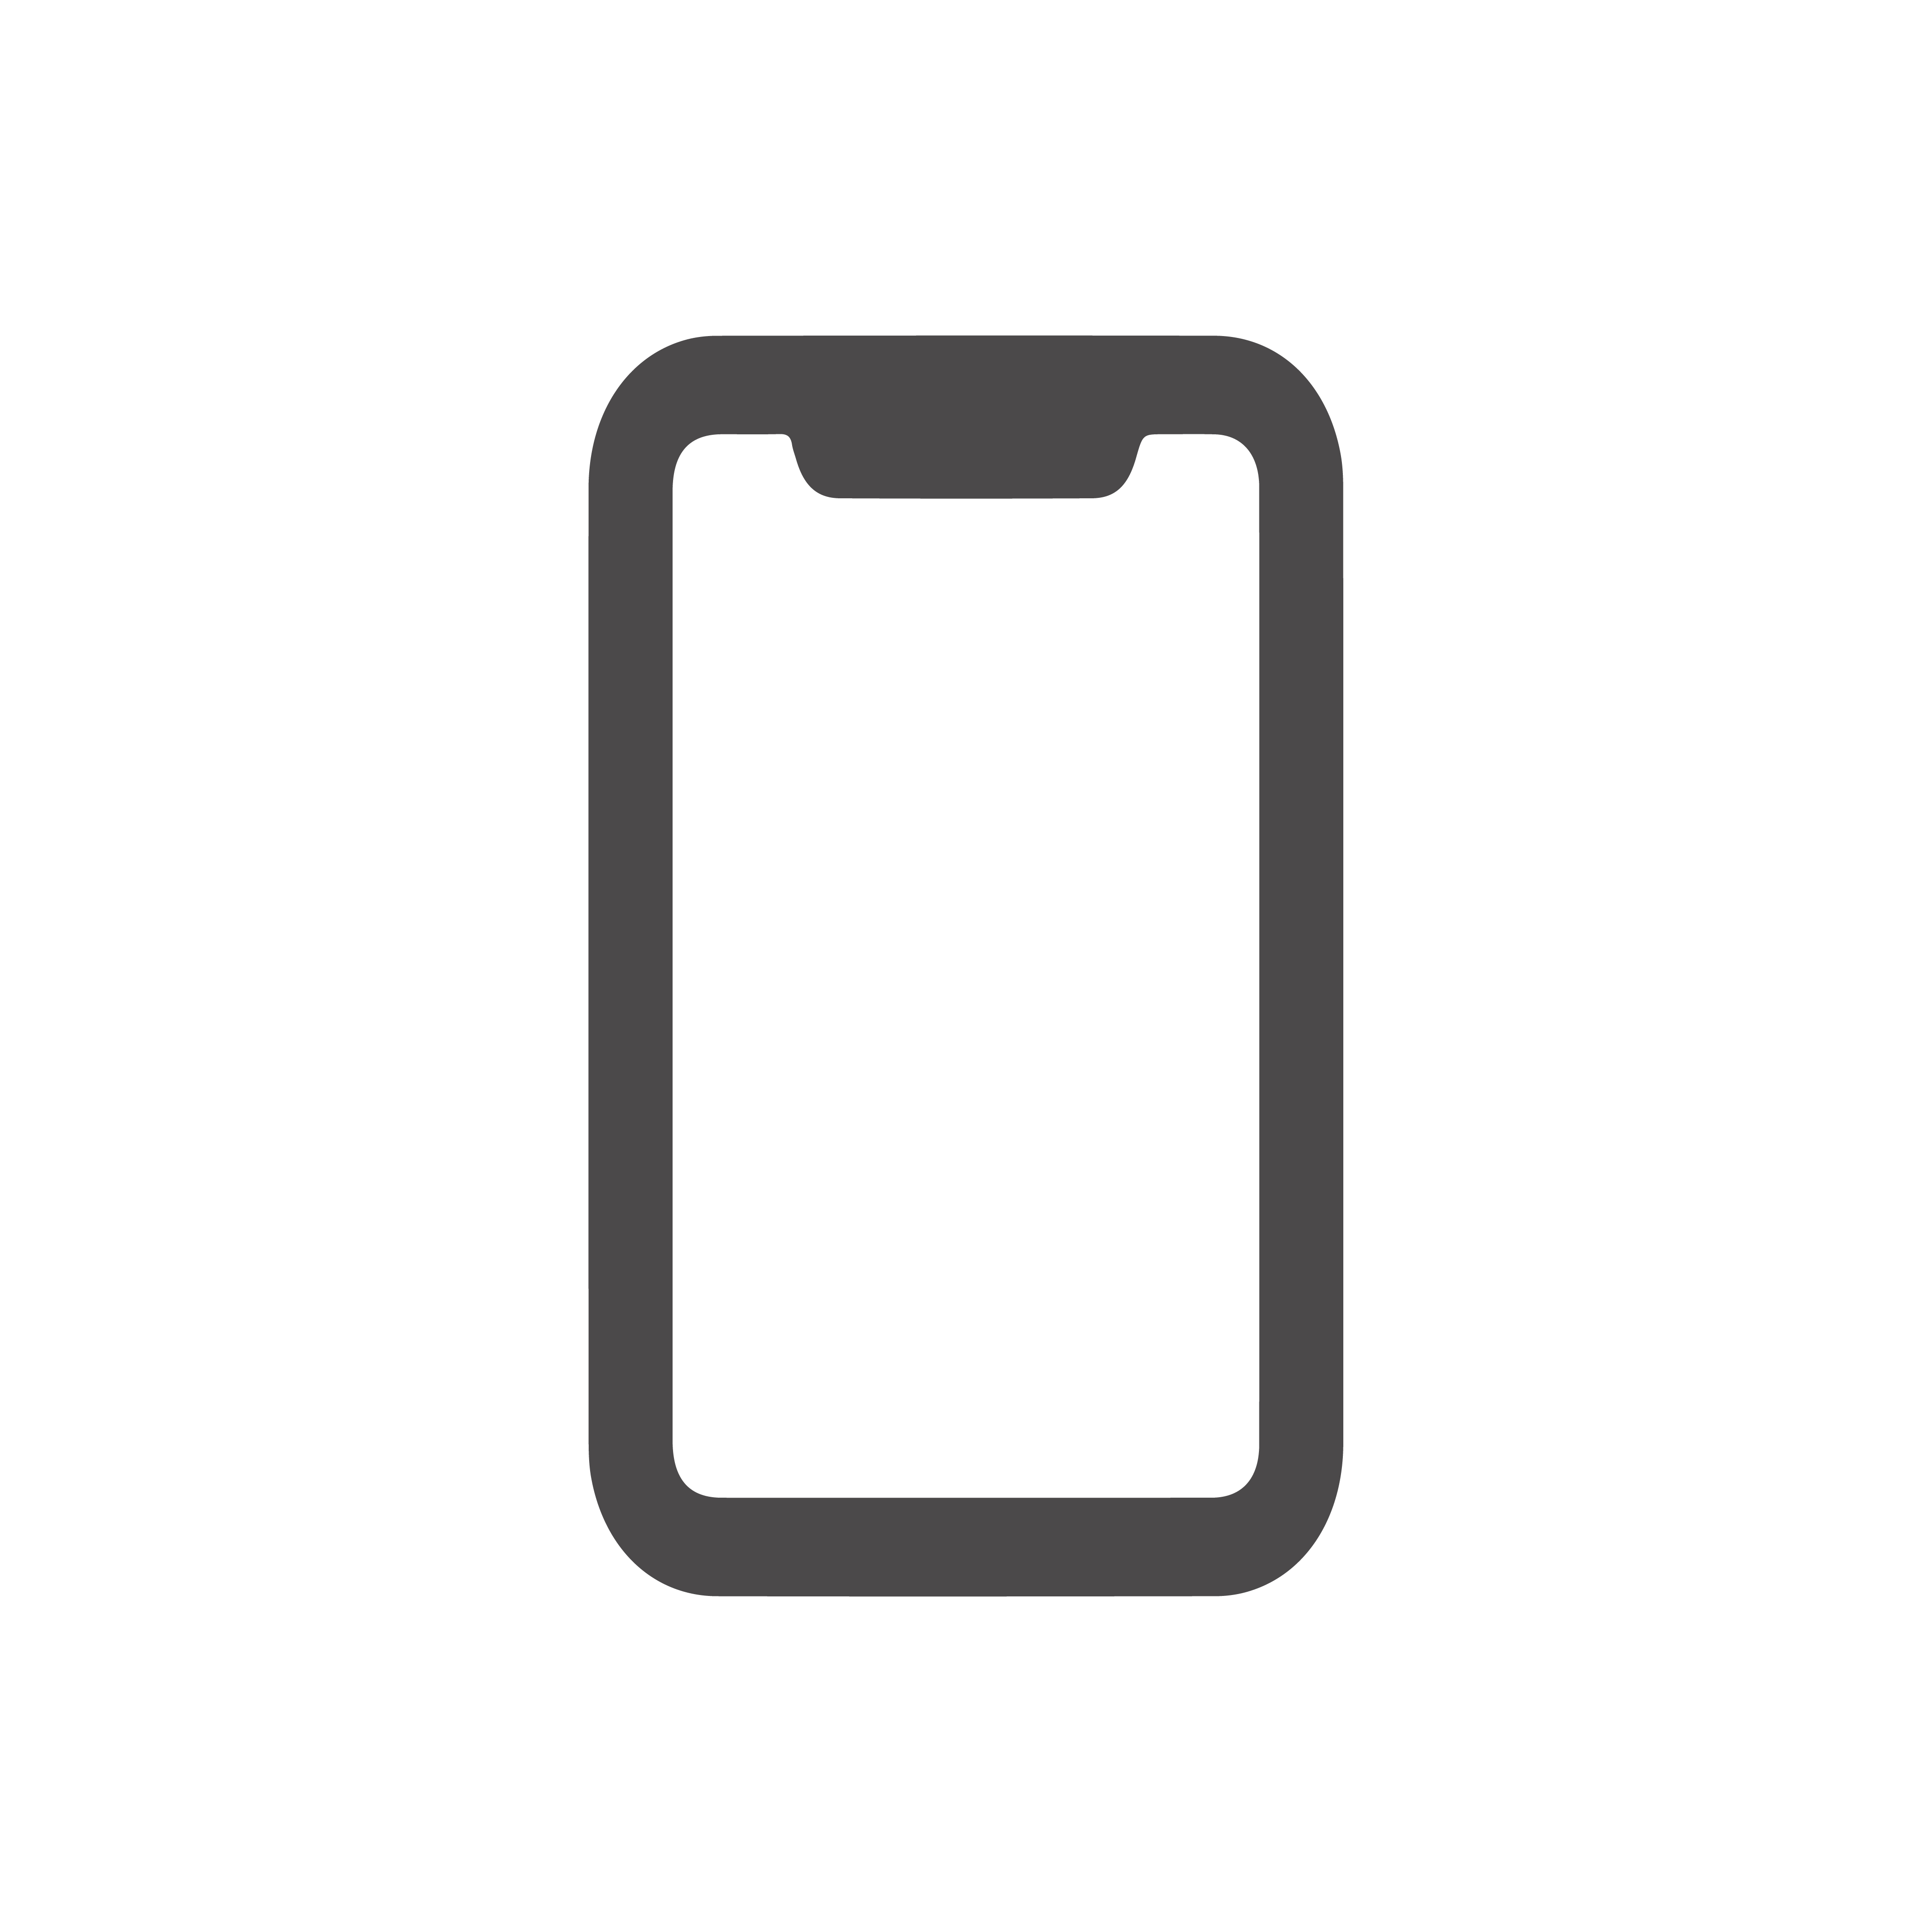 iphone outline icon